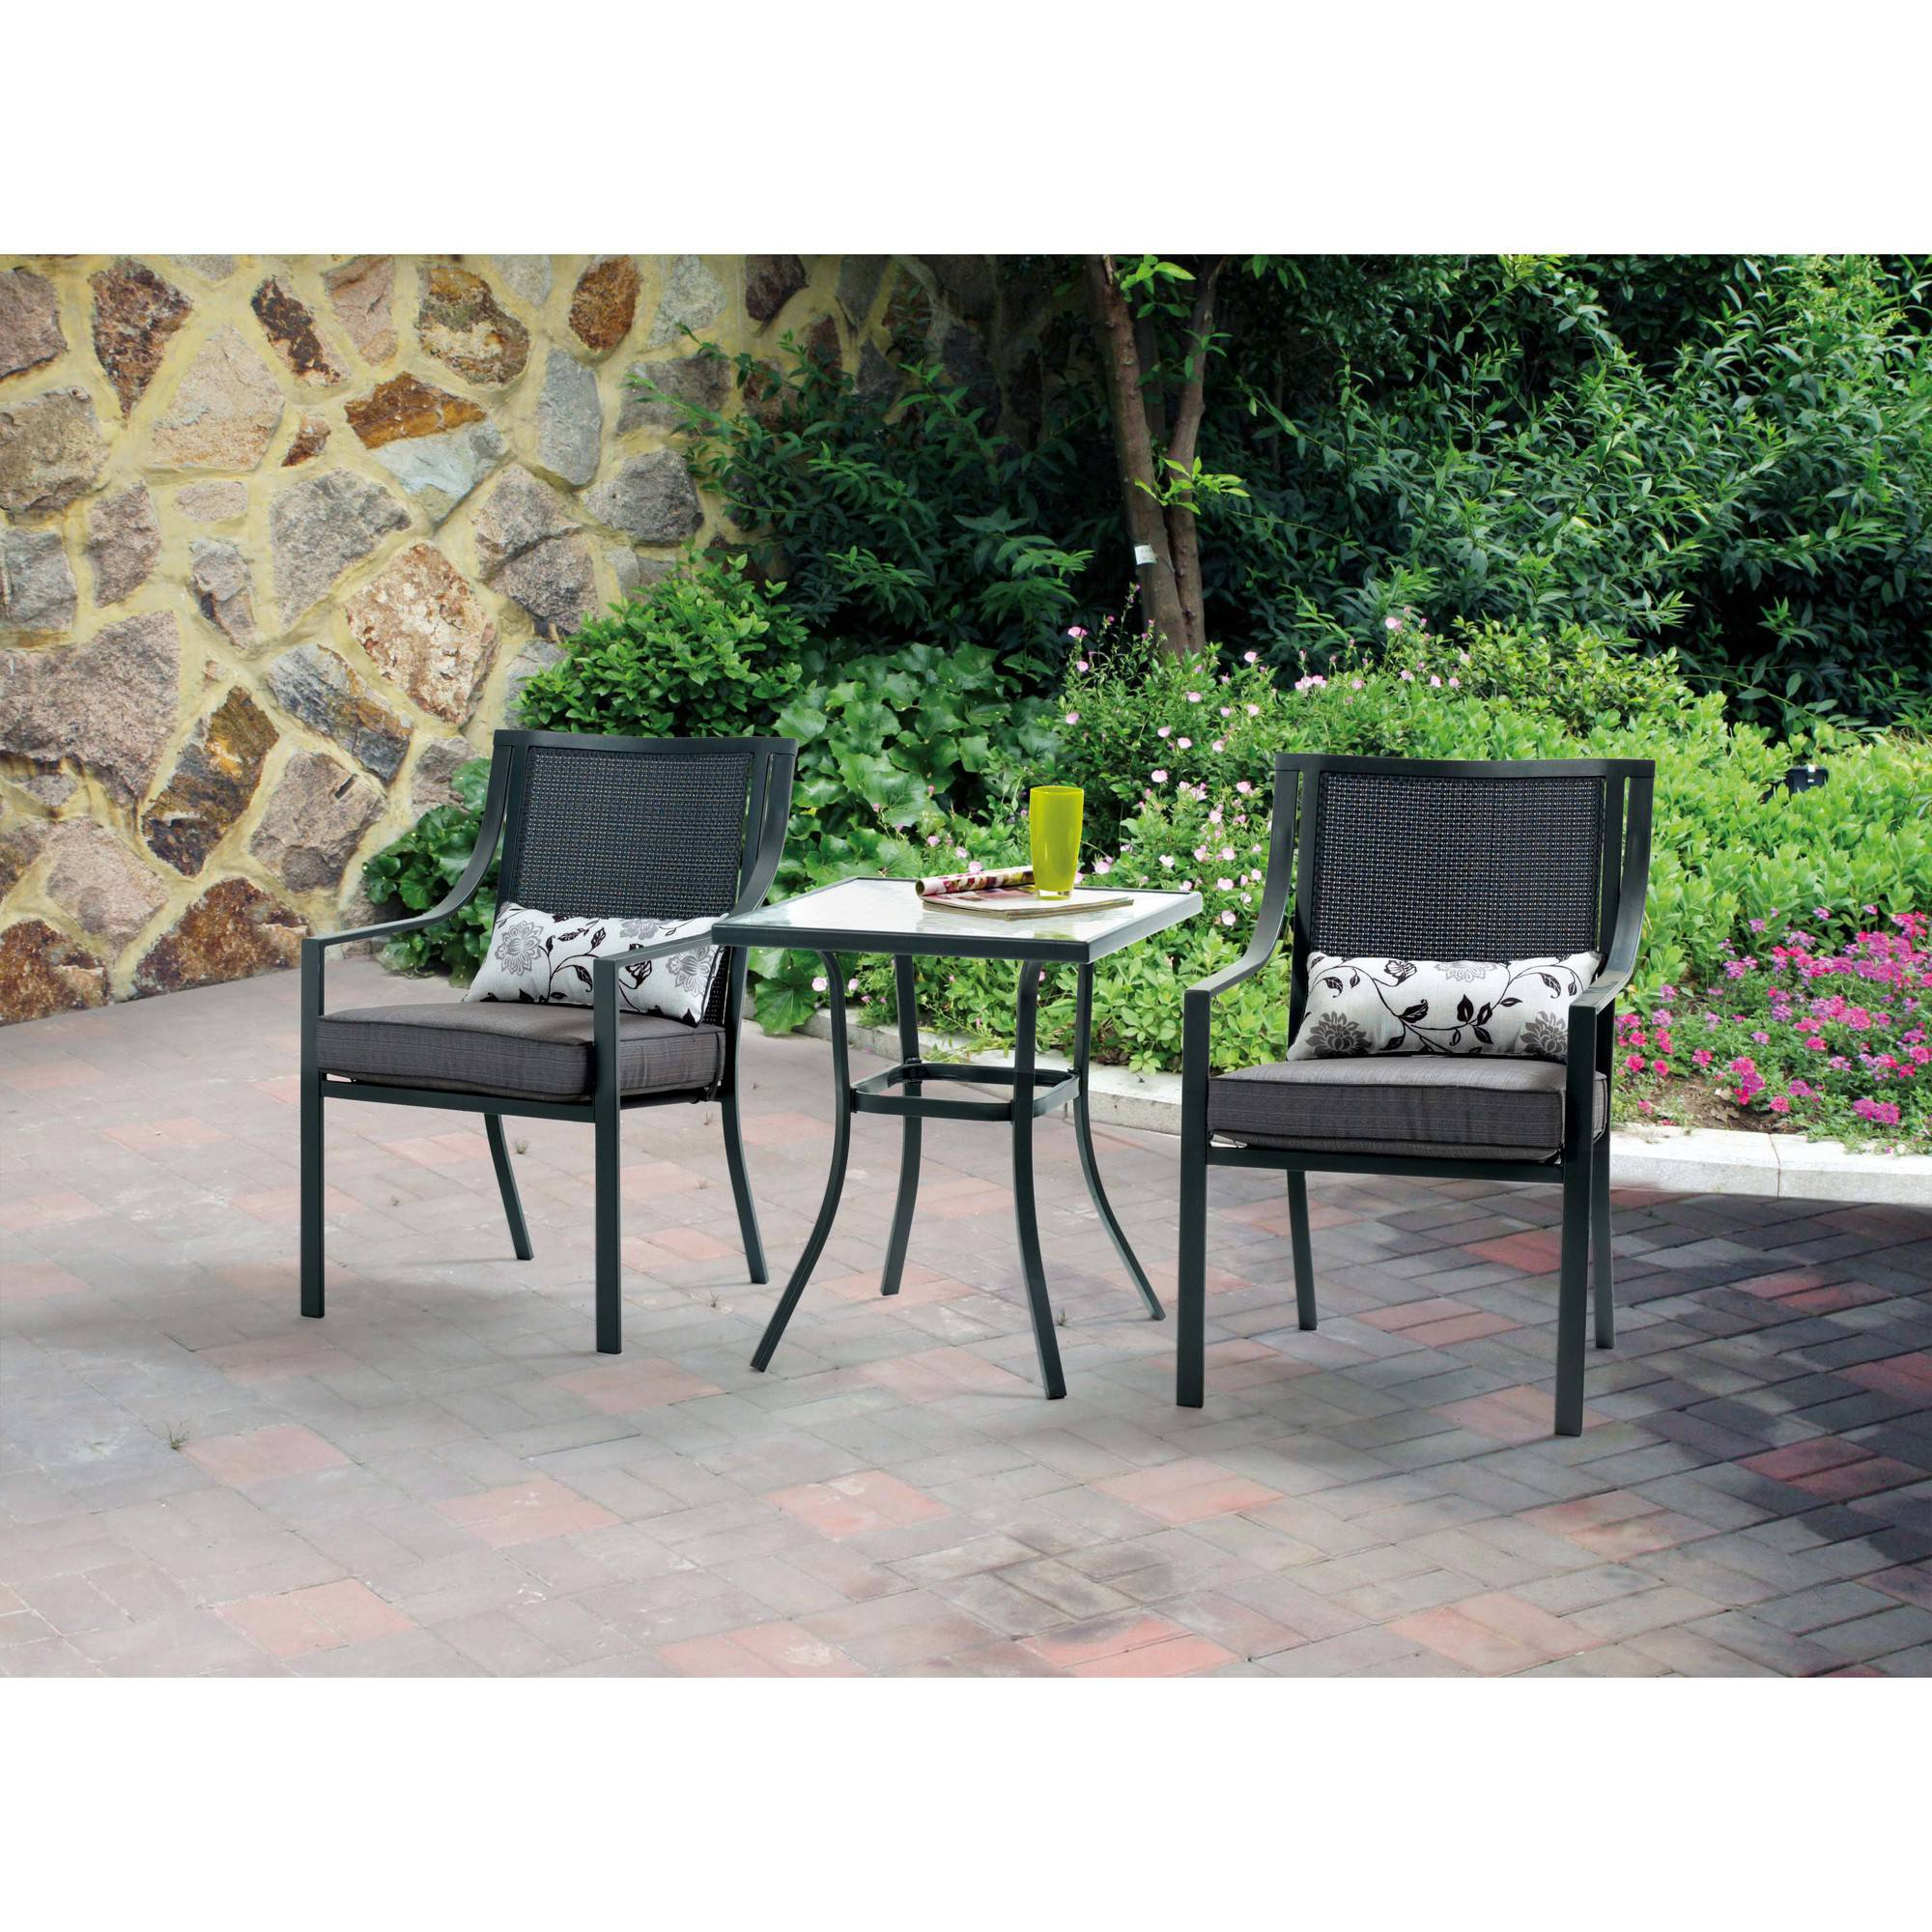 Small Patio Table And Chairs Part - 40: Better Homes And Gardens Amelia Cove 3-Piece Outdoor Bistro Set, Seats 2 -  Walmart.com